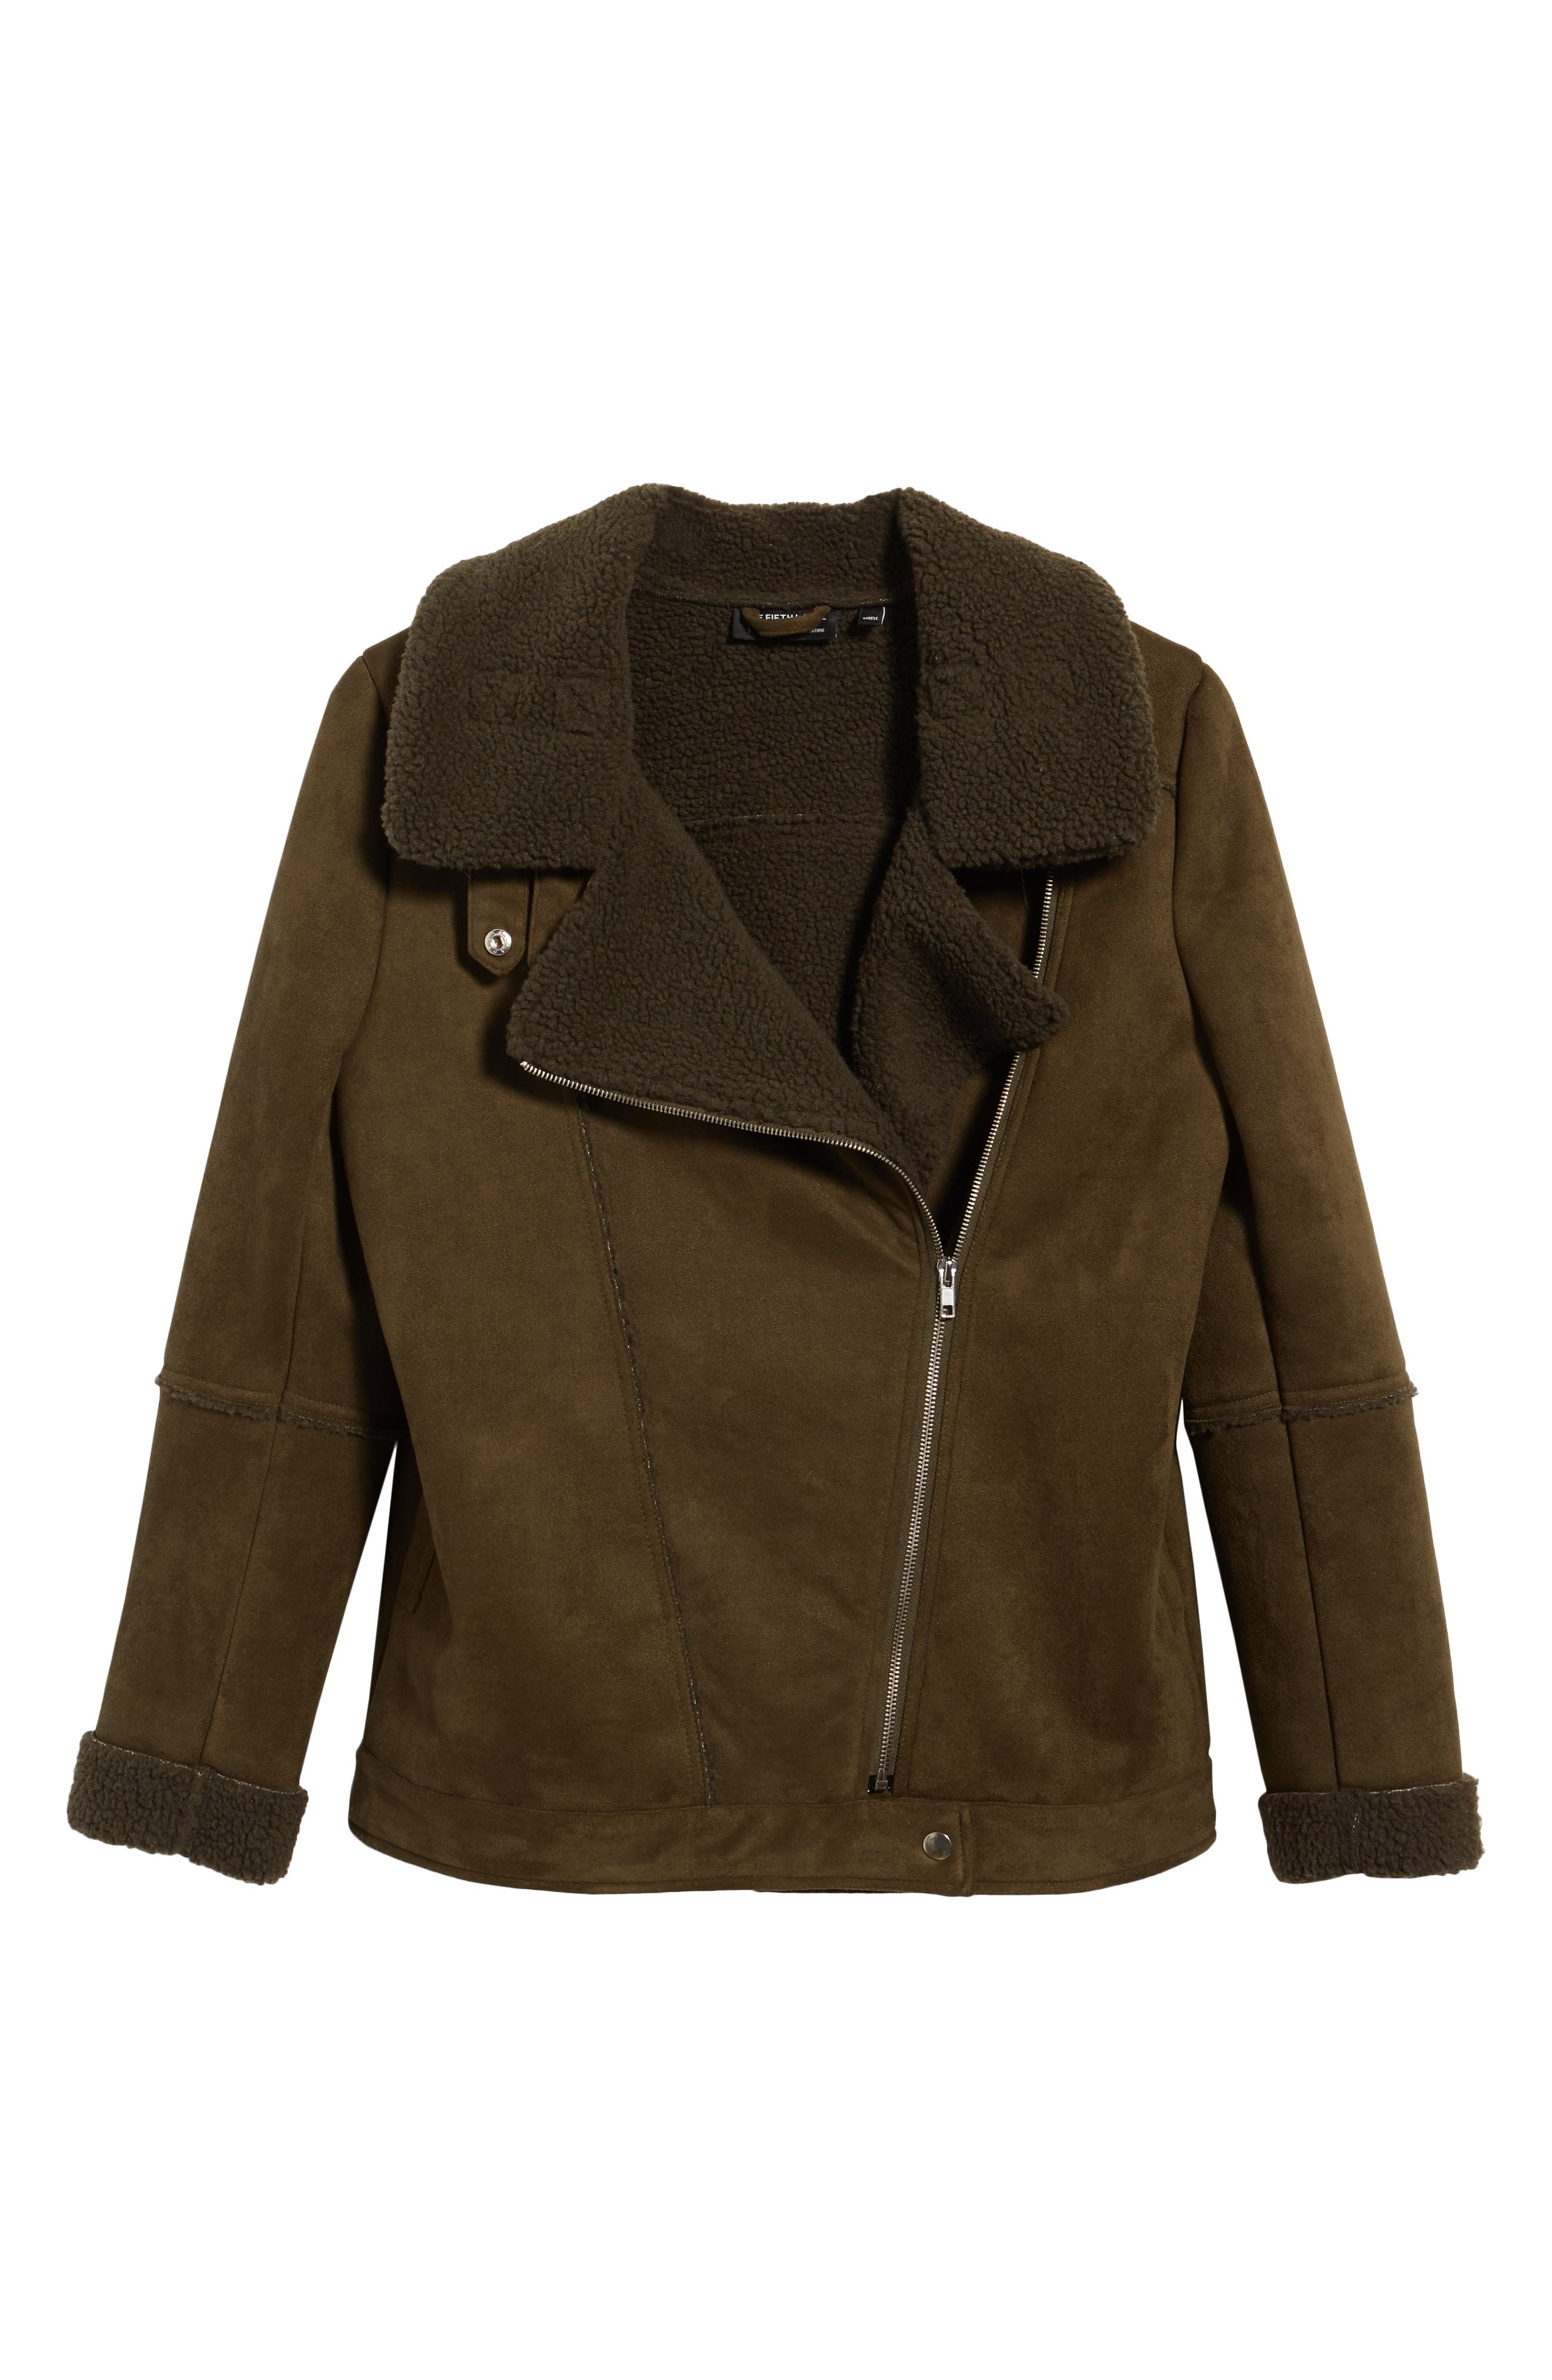 Dallas Faux Shearling Jacket,                             Alternate thumbnail 7, color,                             Olive